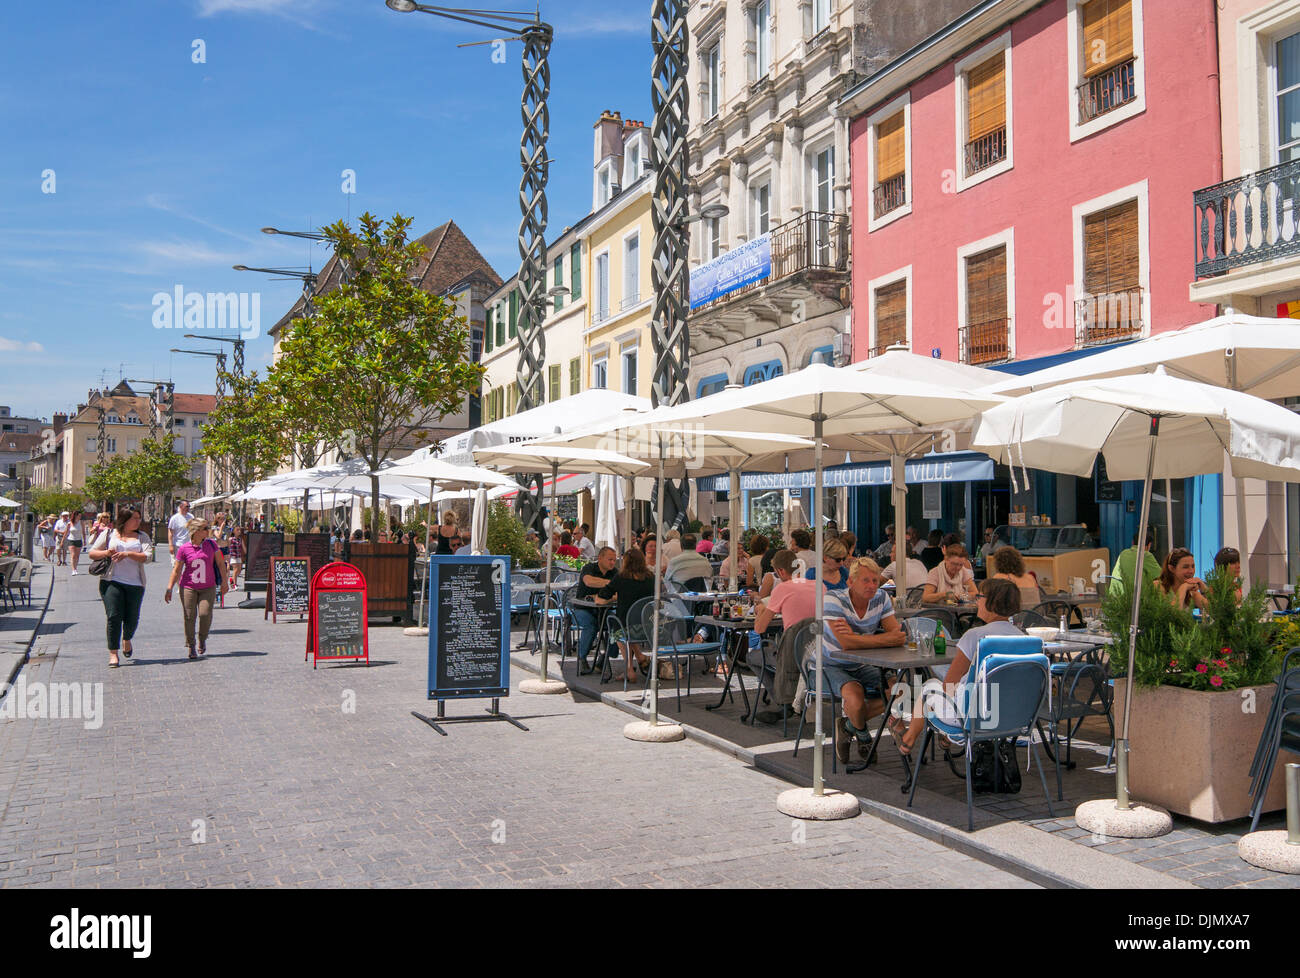 people eating at open air restaurants chalon sur saone burgundy stock photo 63154623 alamy. Black Bedroom Furniture Sets. Home Design Ideas